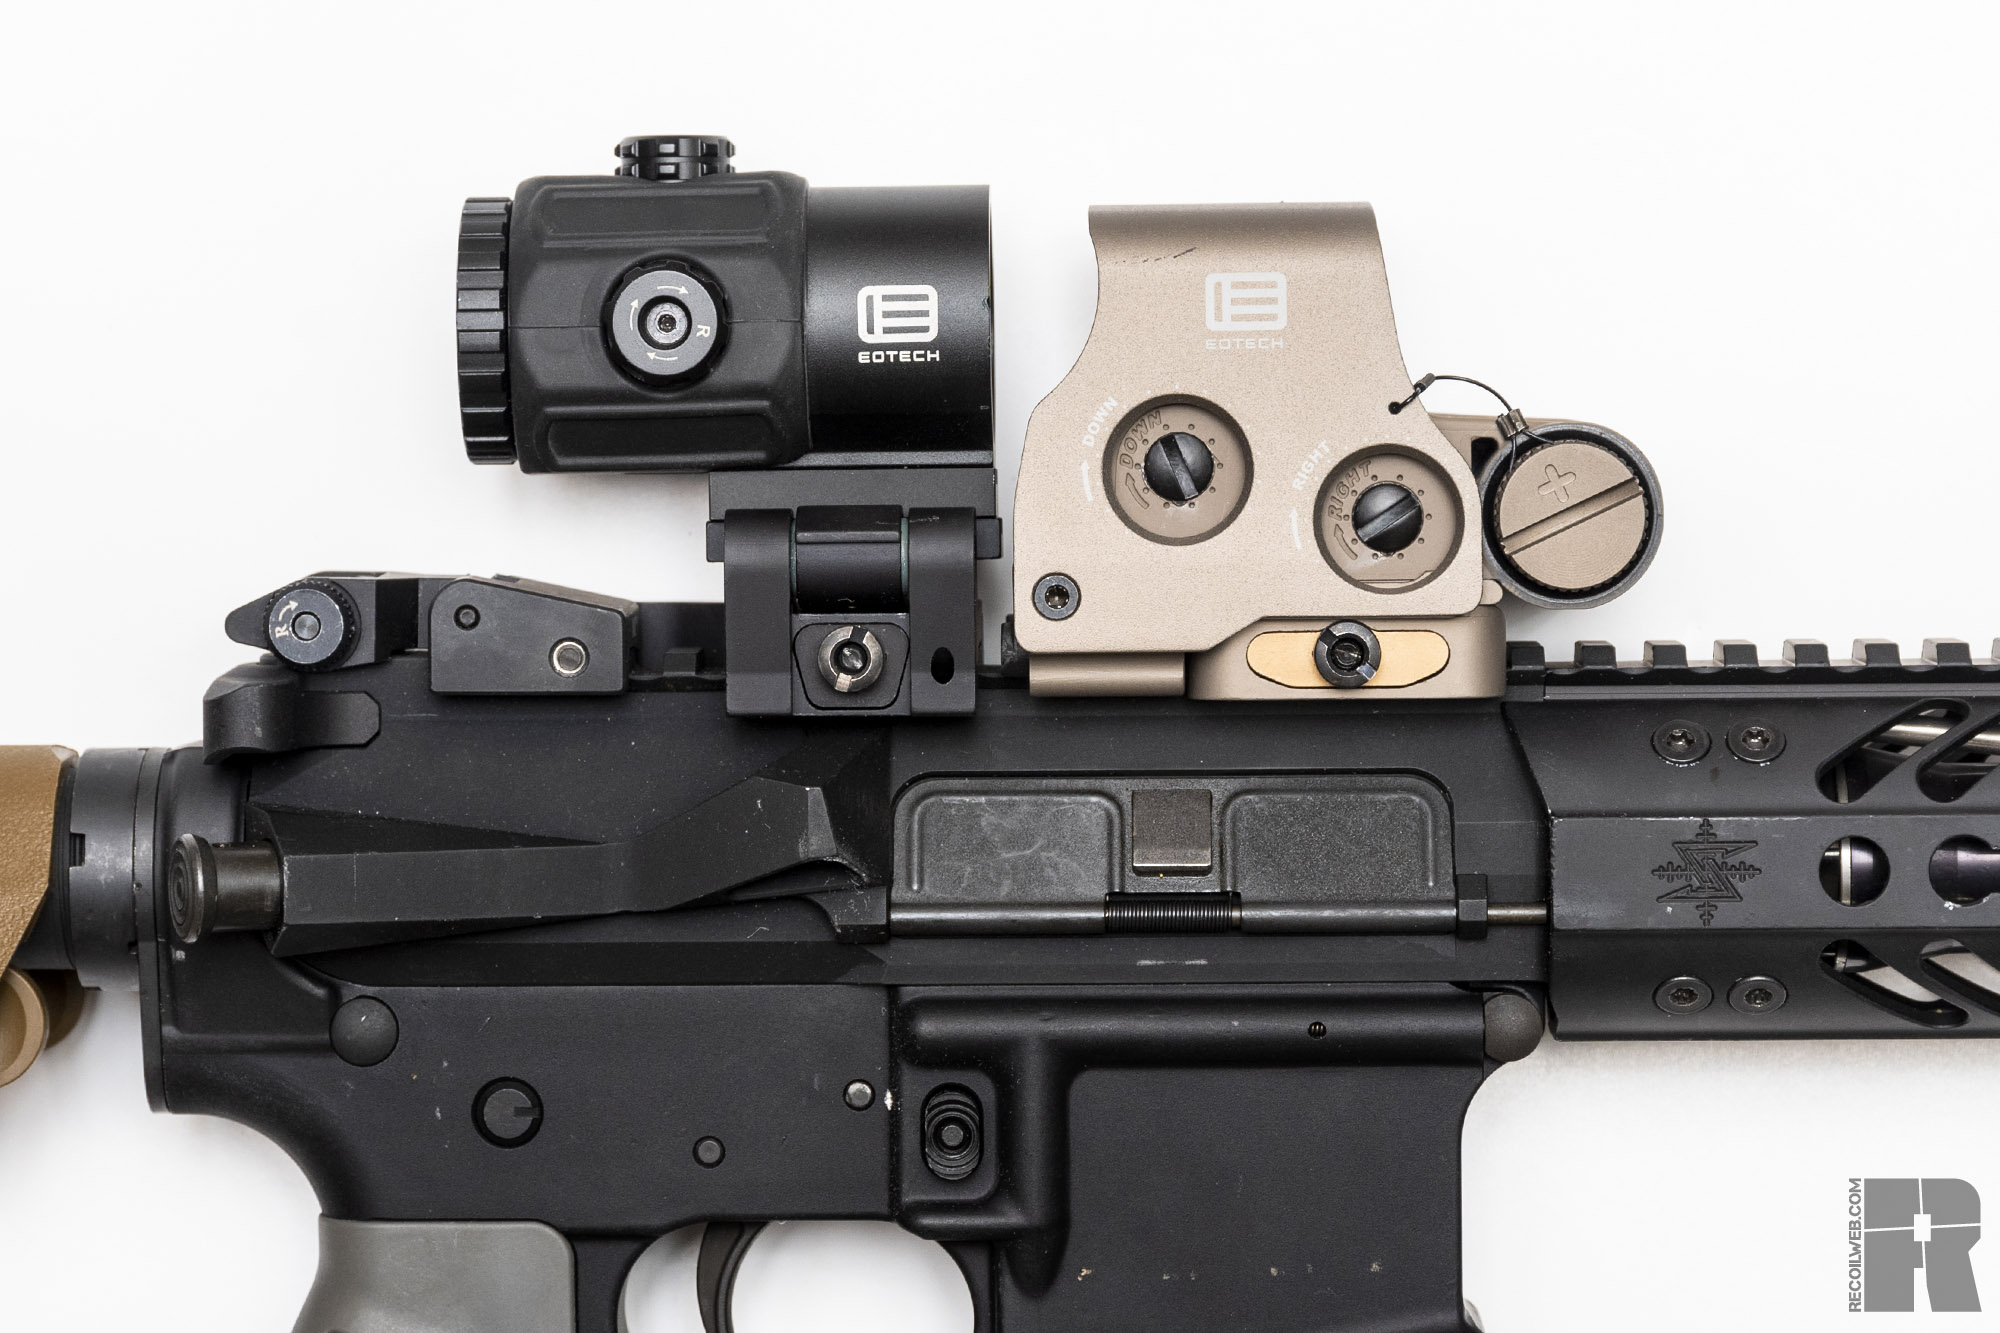 EOTech Holographic Sight and Magnifier